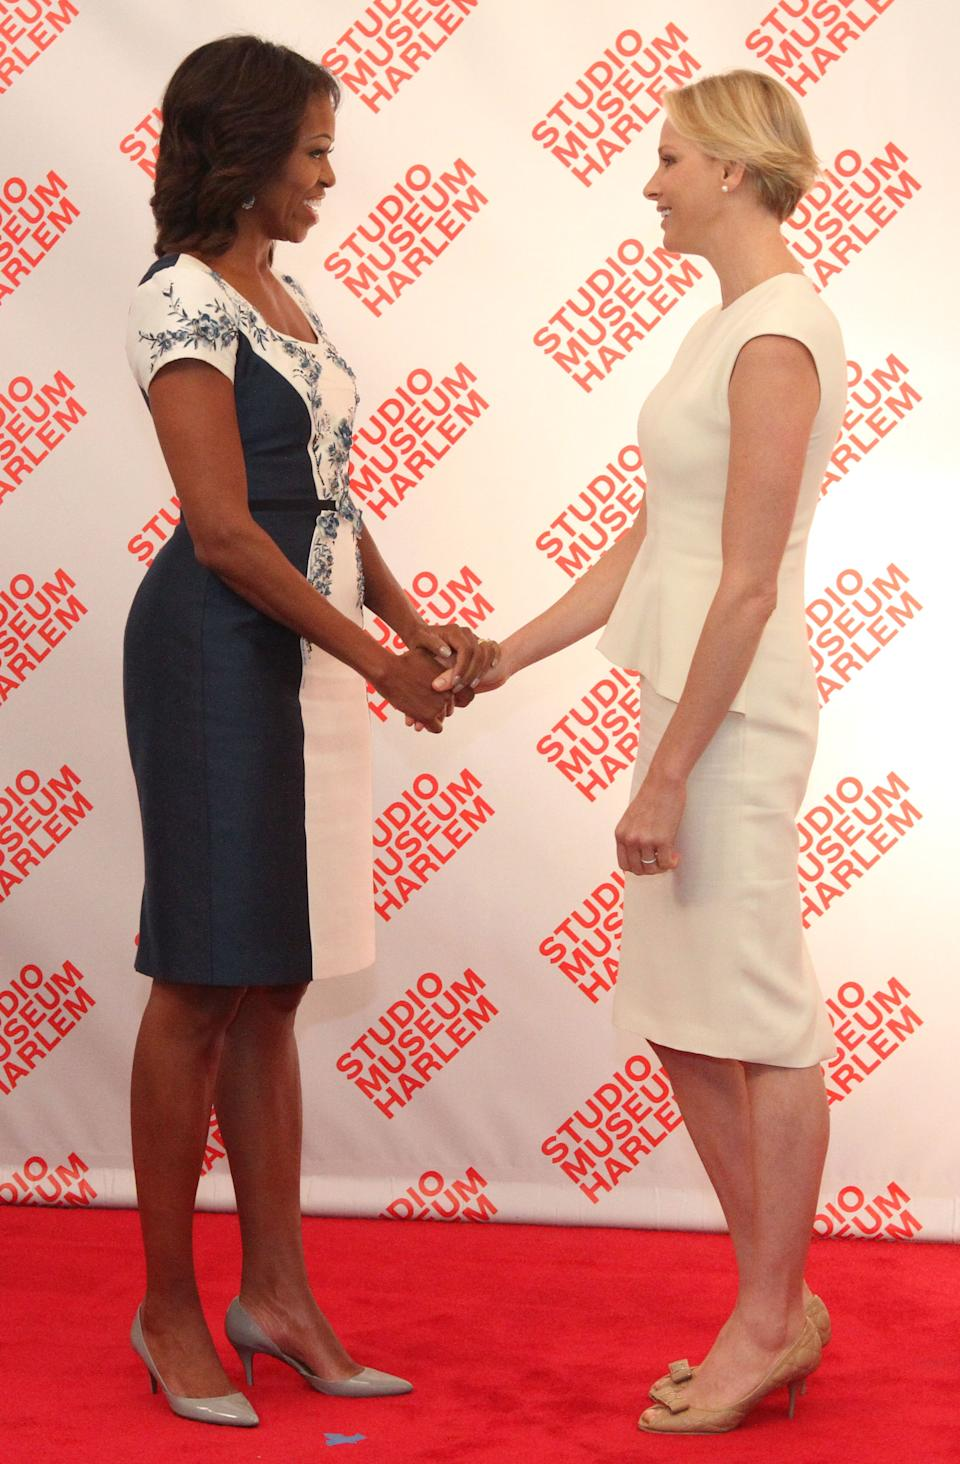 U.S. first lady Michelle Obama, left, greets Princess Charlene of Monaco during a luncheon at The Studio Museum of Harlem Tuesday Sept. 24, 2013 in New York. The first lady hosted the event for spouses of chiefs of state and heads of government participating in the UN General Assembly. (AP Photo/Tina Fineberg)